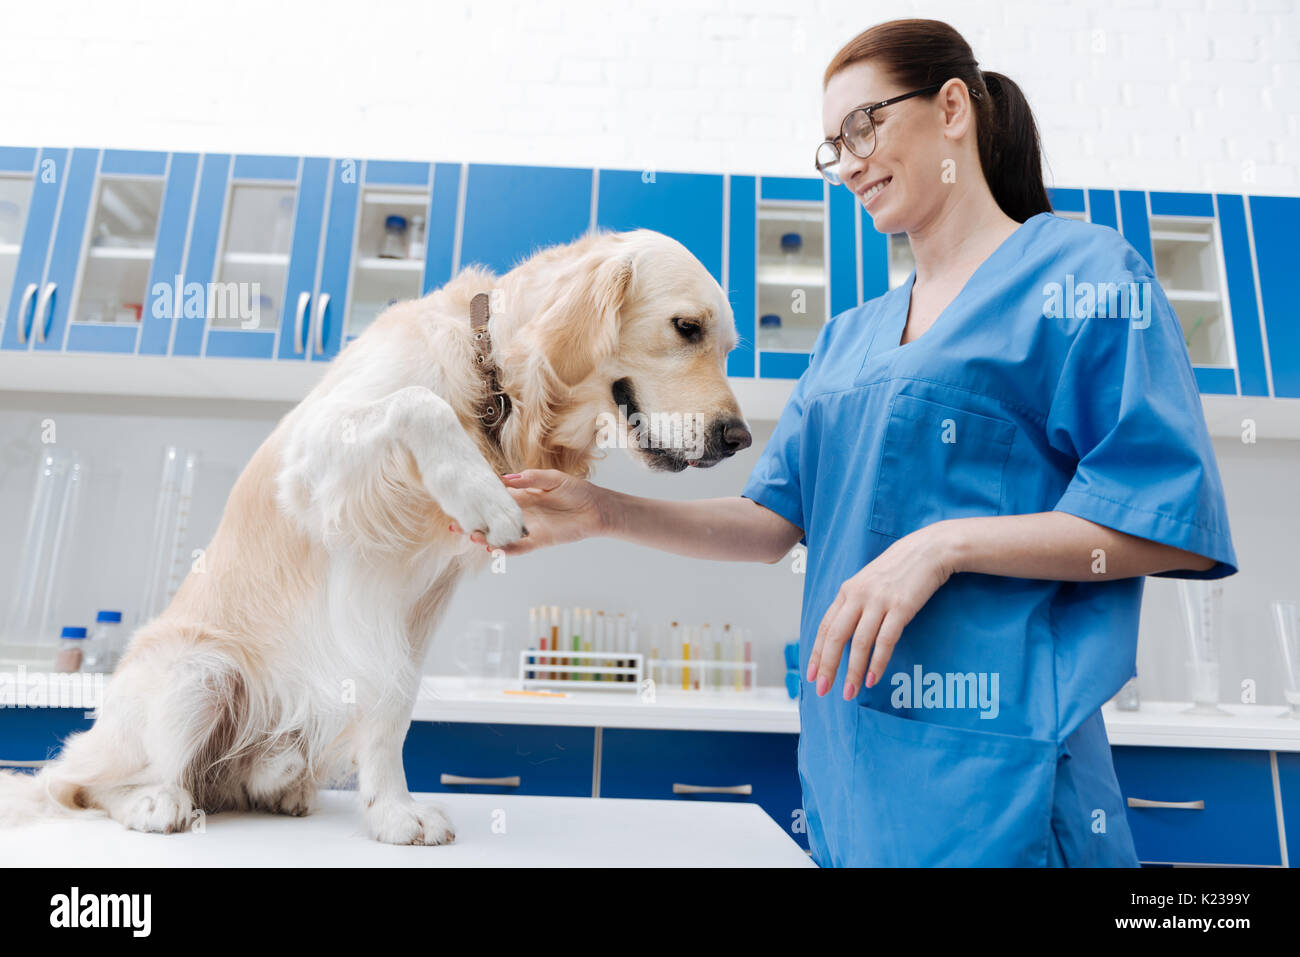 Attentive Labrador giving his paw to doctor - Stock Image